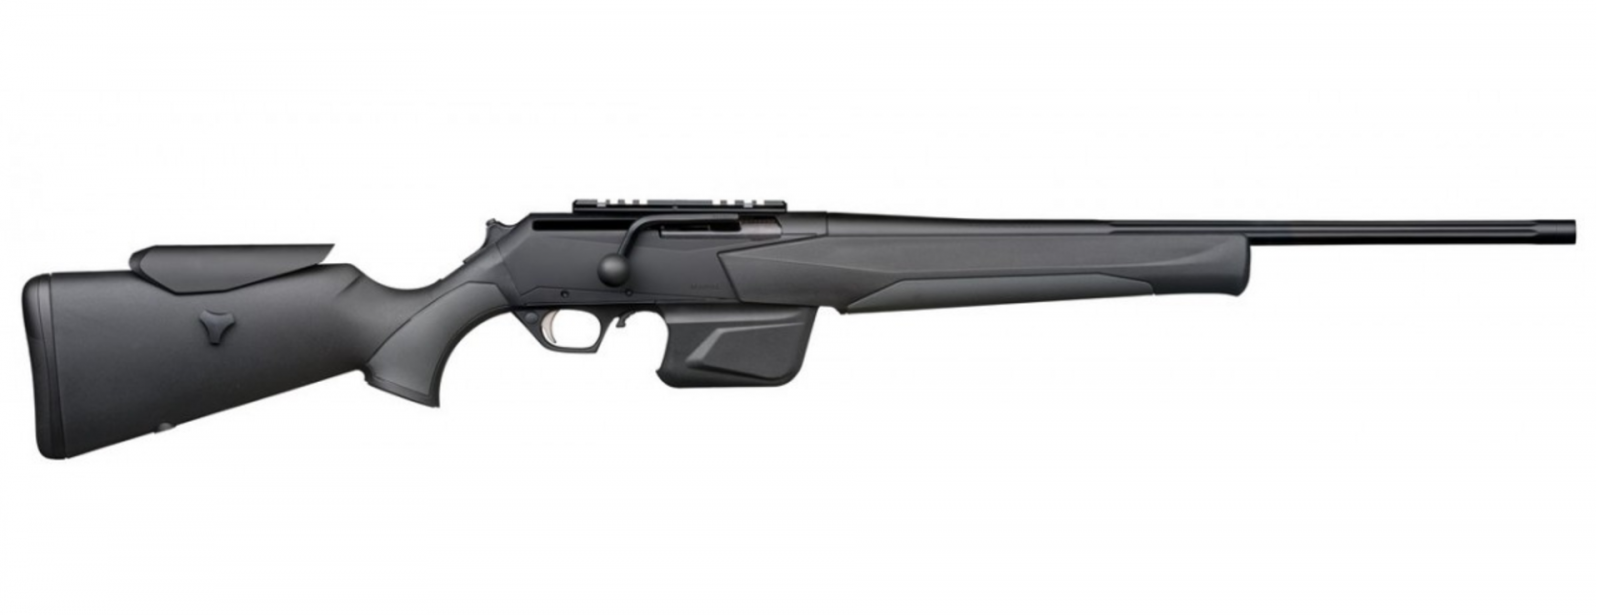 Carabine BROWNING MARAL COMPO NORDIC Cal 308win